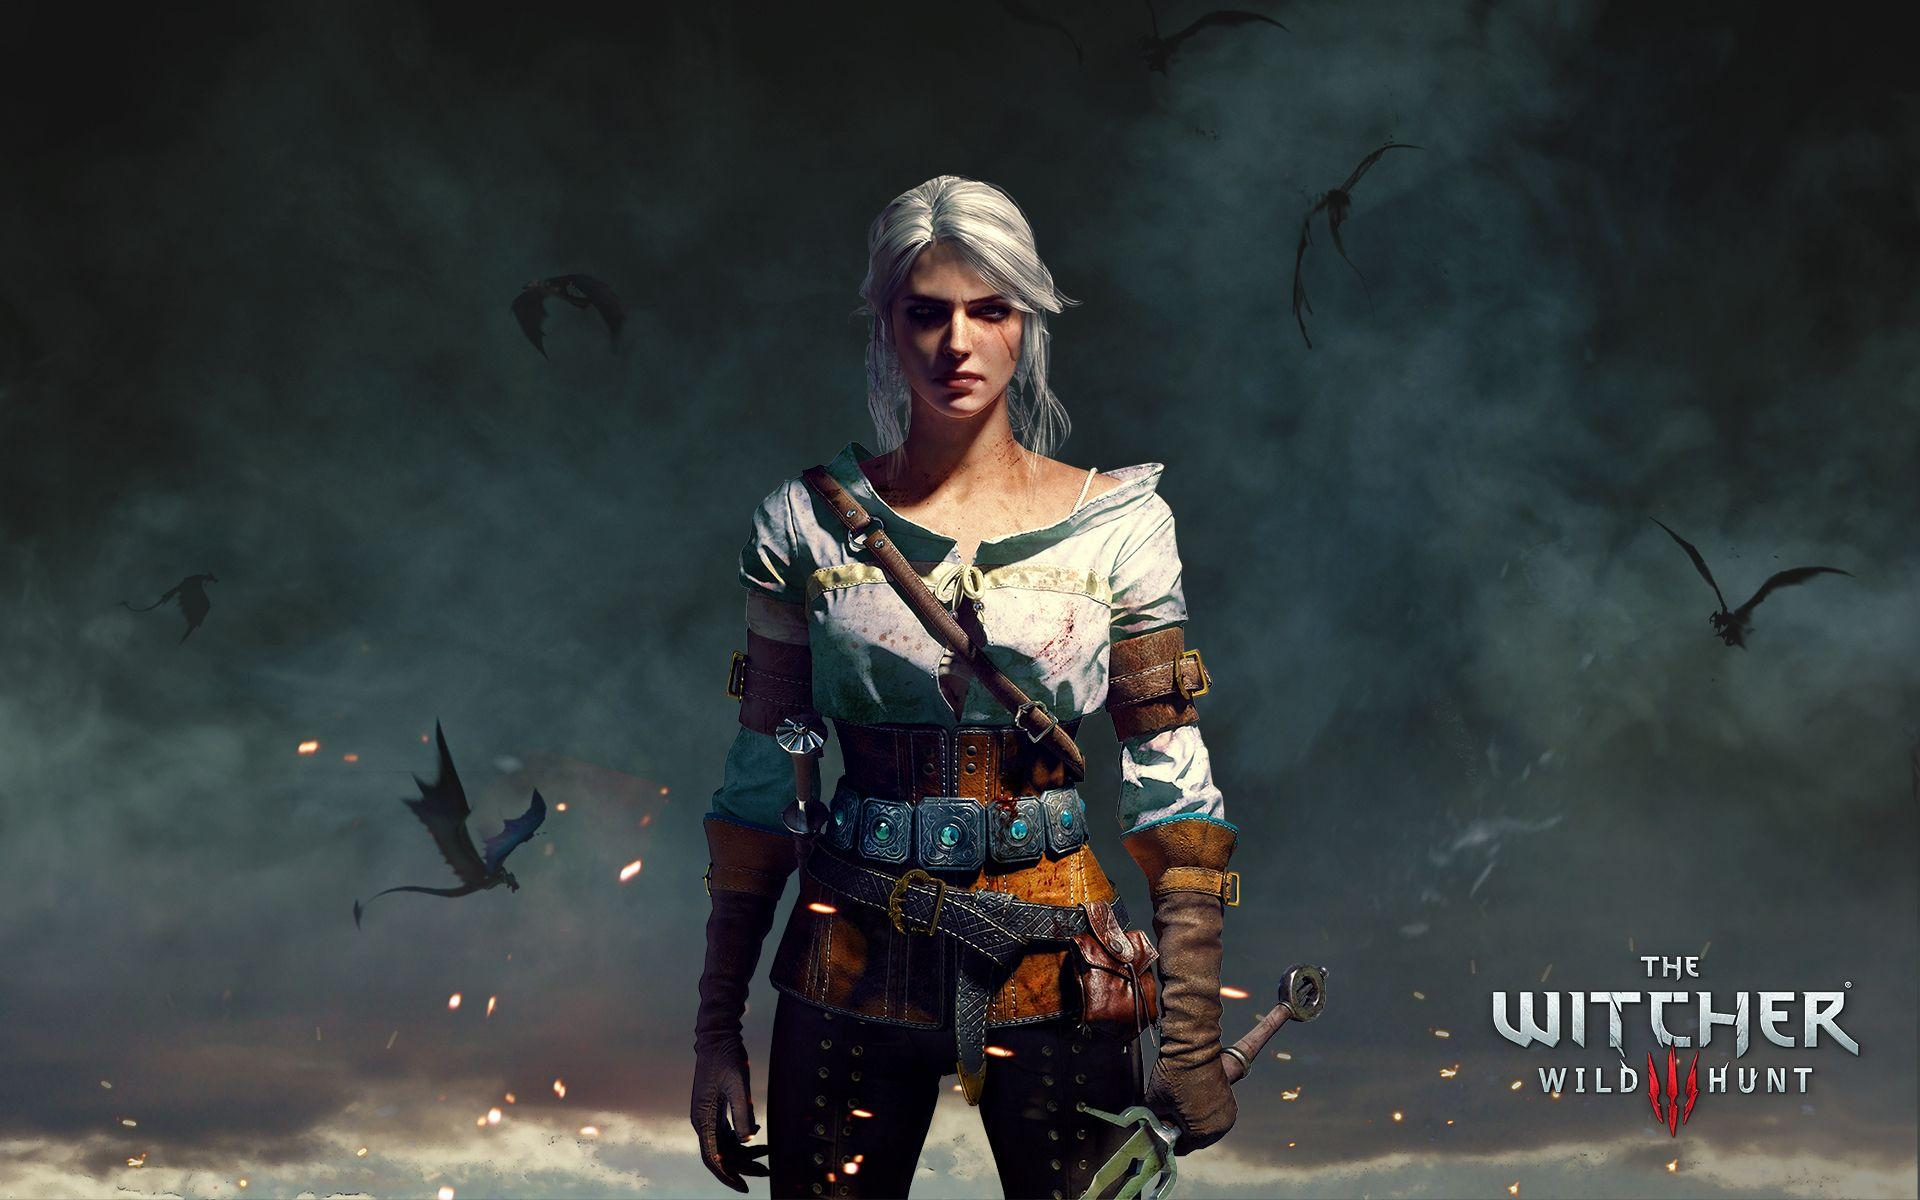 The Witcher 3 Wallpapers Wallpaper Cave